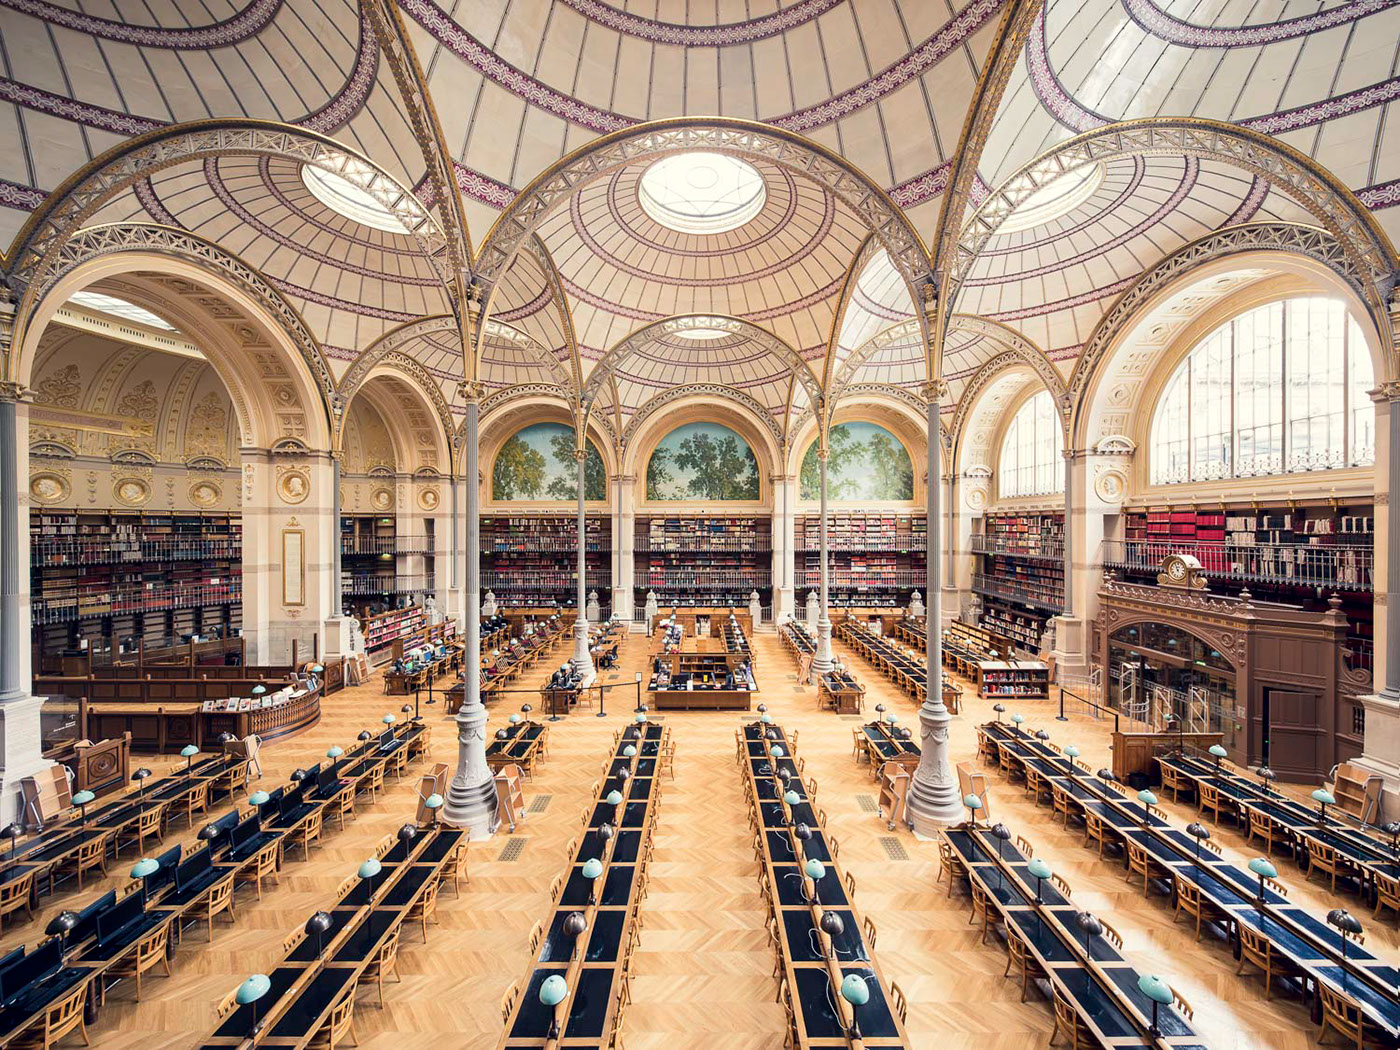 Bibliotheque Nationale de France, Salle Labrouste, Paris, 1868